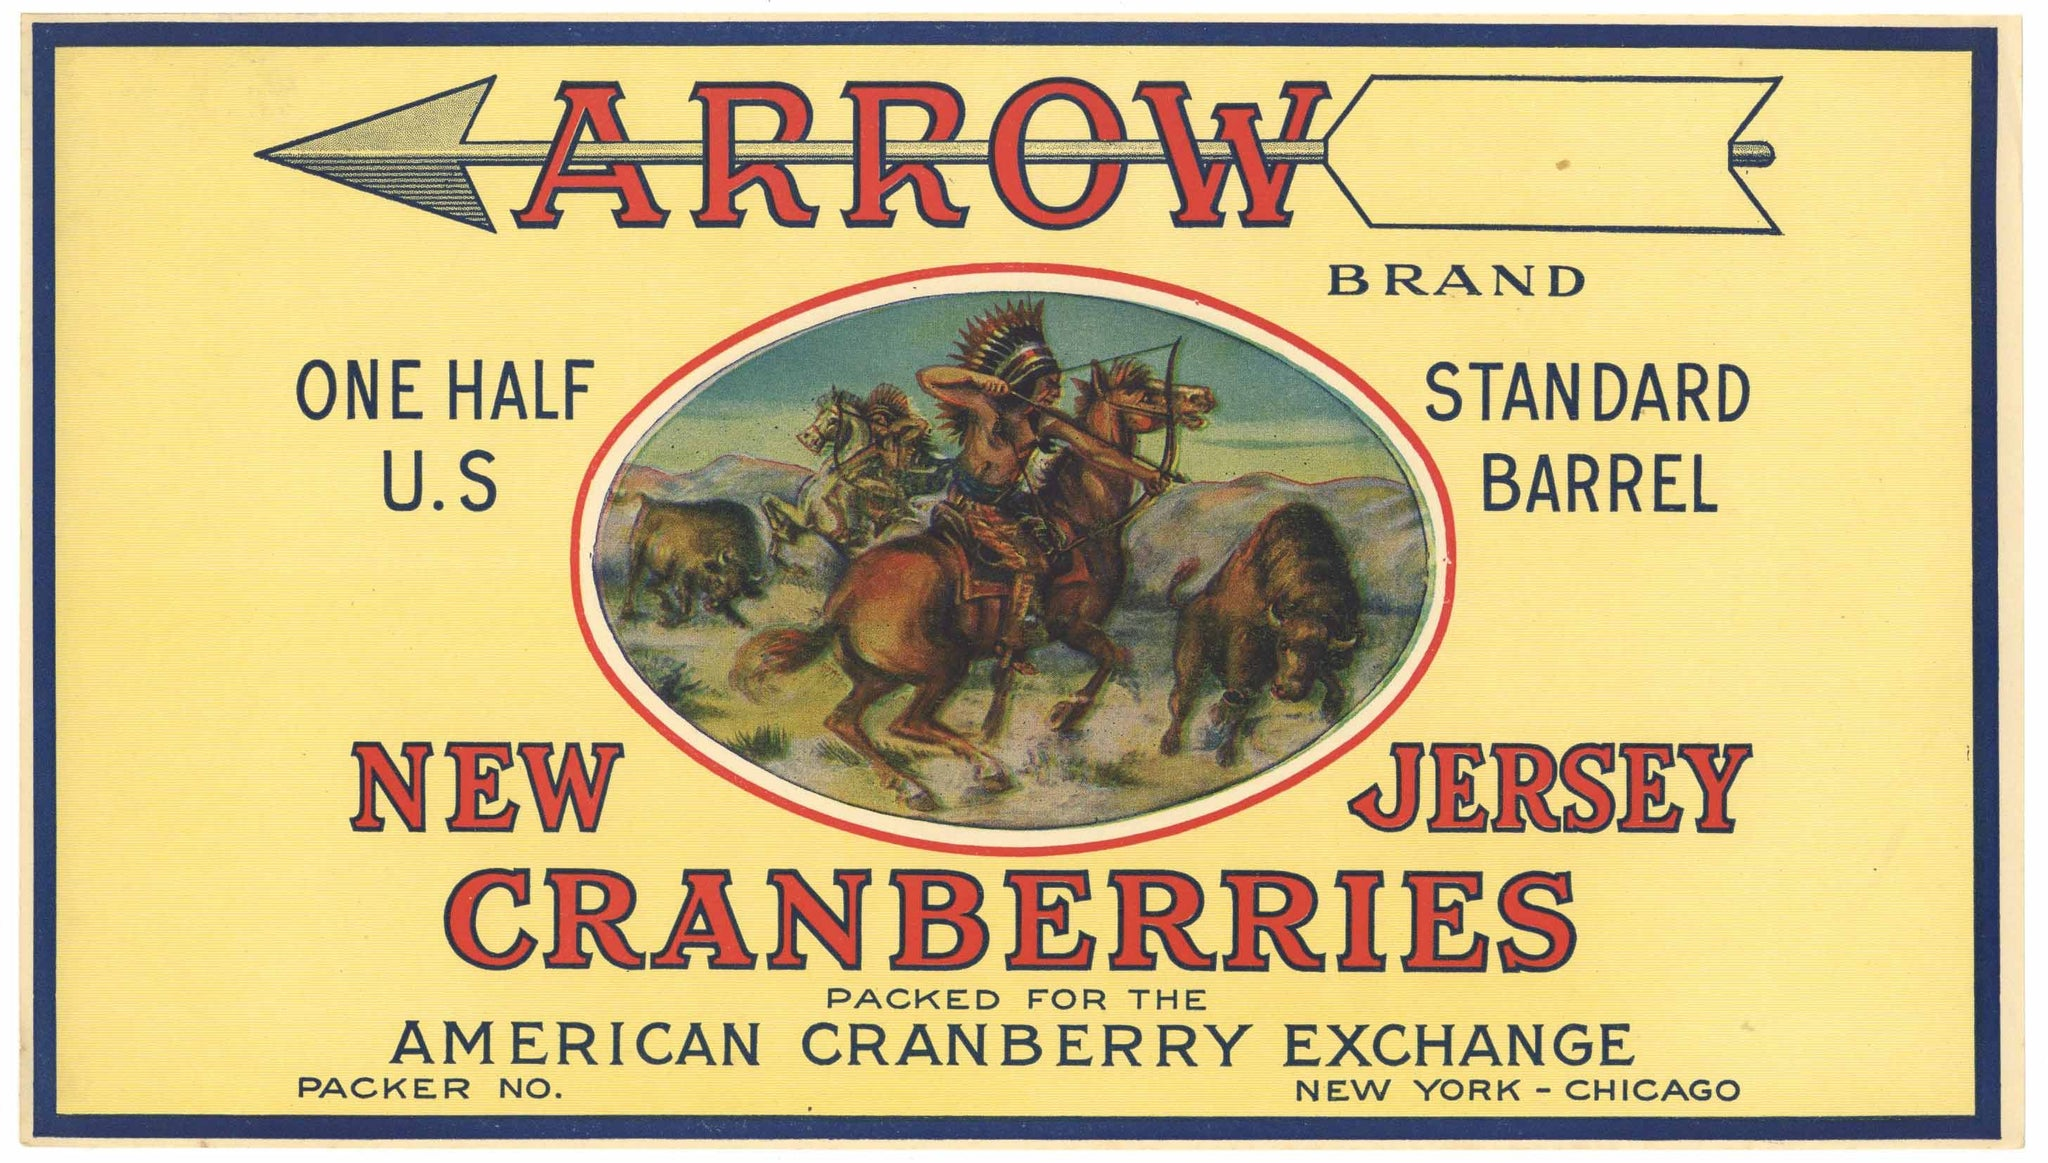 Arrow Brand Vintage New Jersey Cranberry Crate Label, 1/2